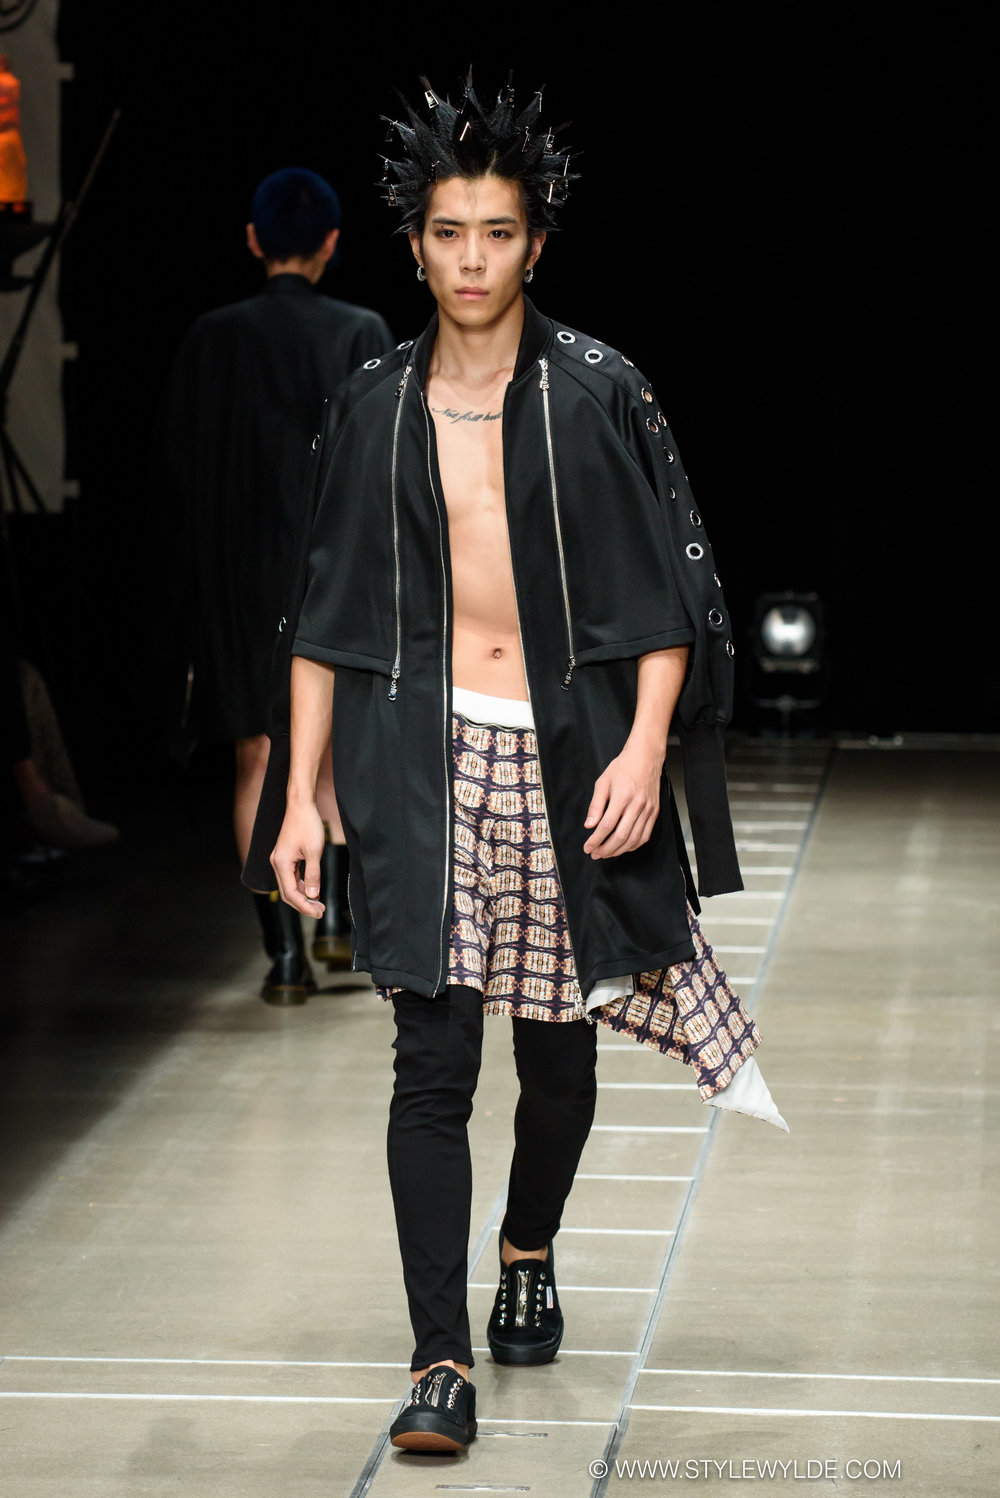 stylewylde_acuod_by_chanu_SS18_runway-5.jpg